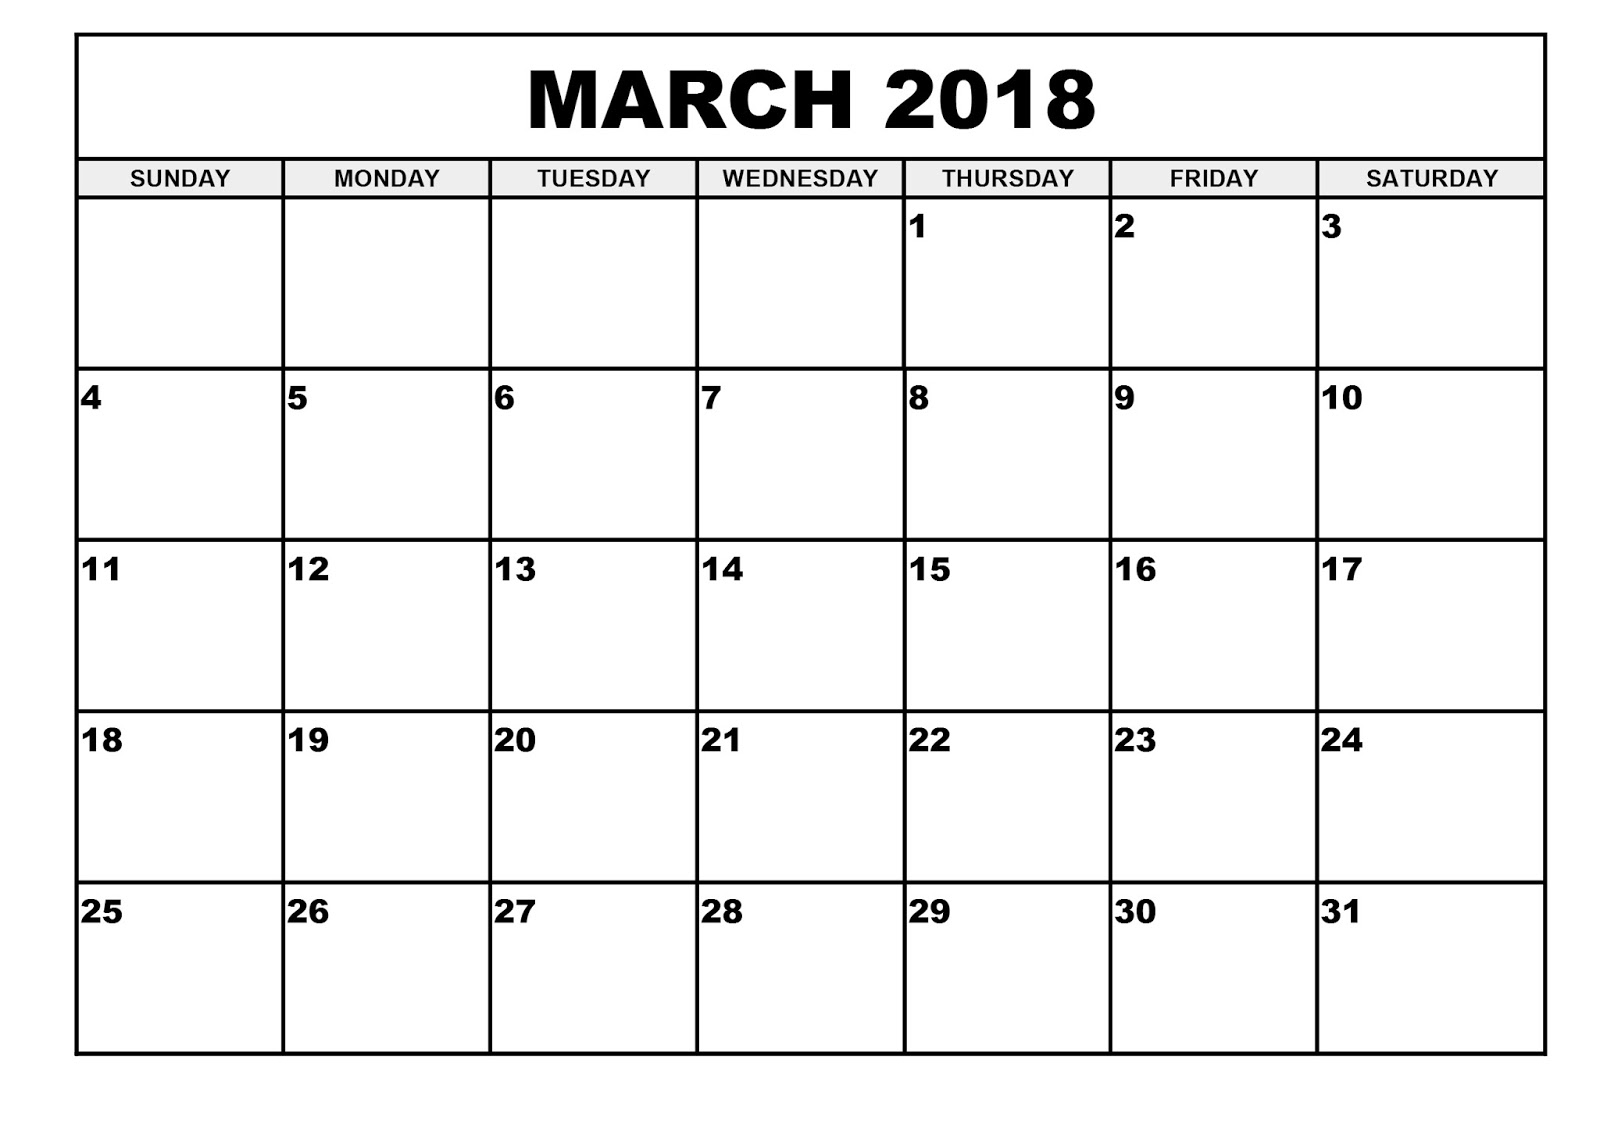 March 2018 Printable Calendar Waterproof | Printable Calendar 2018